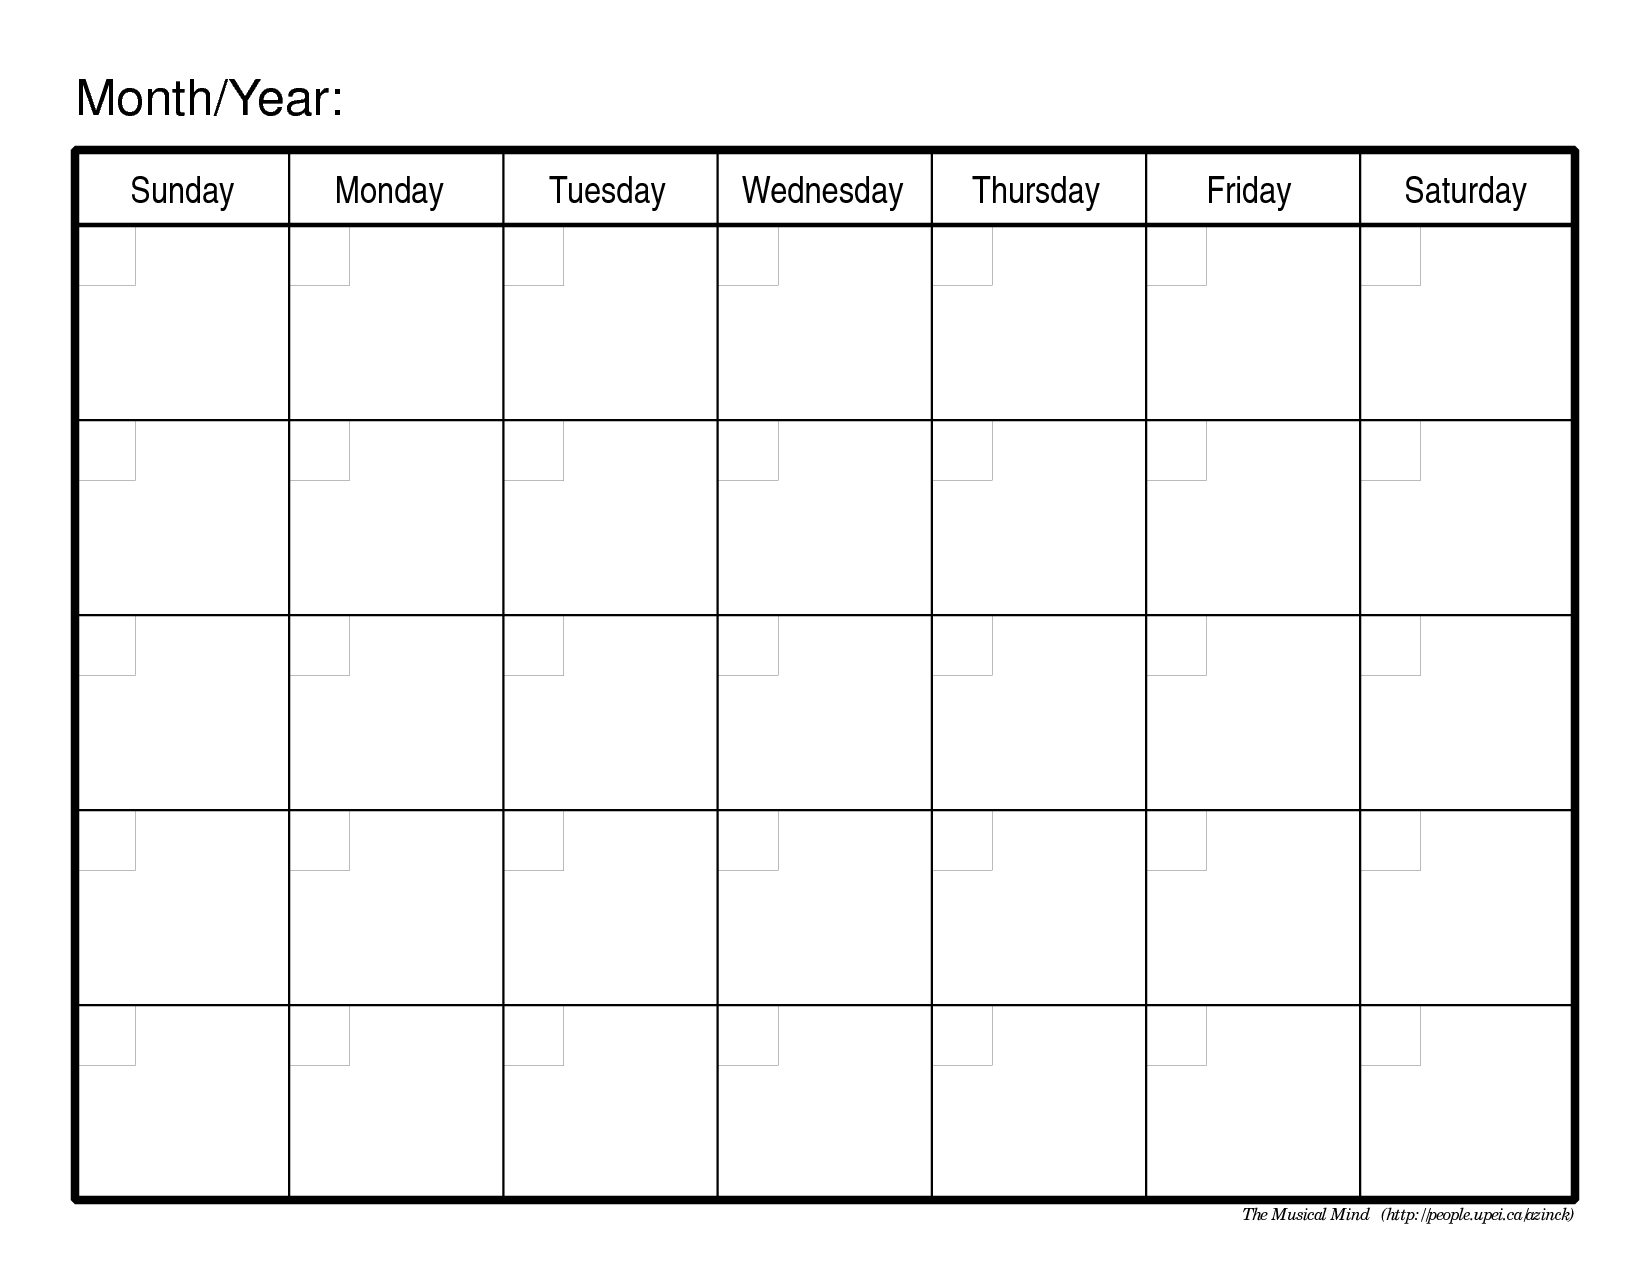 Generic Monthly Calendar Template Word - Infer.ifreezer.co with regard to Blank Calendar Template With Lines